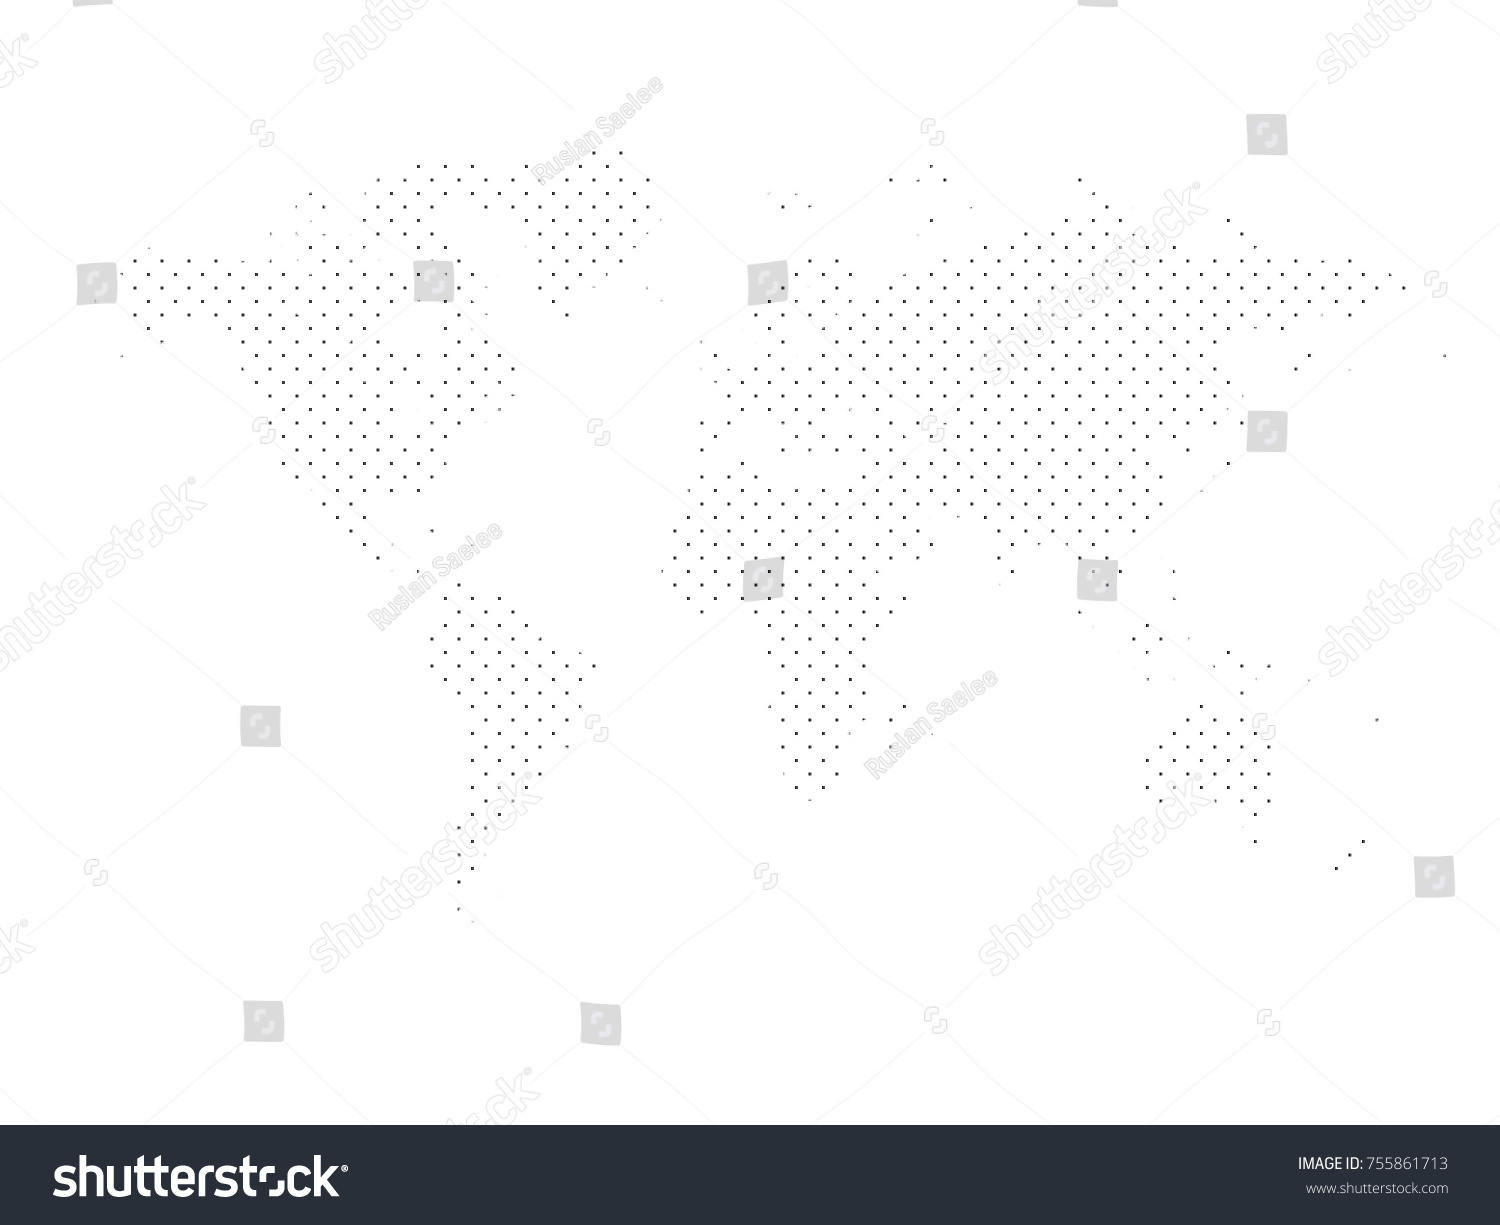 World map dots elements separated abstract stock vector 755861713 world map dotsl elements are separated abstract linear polygonal background vector illustration eps gumiabroncs Images